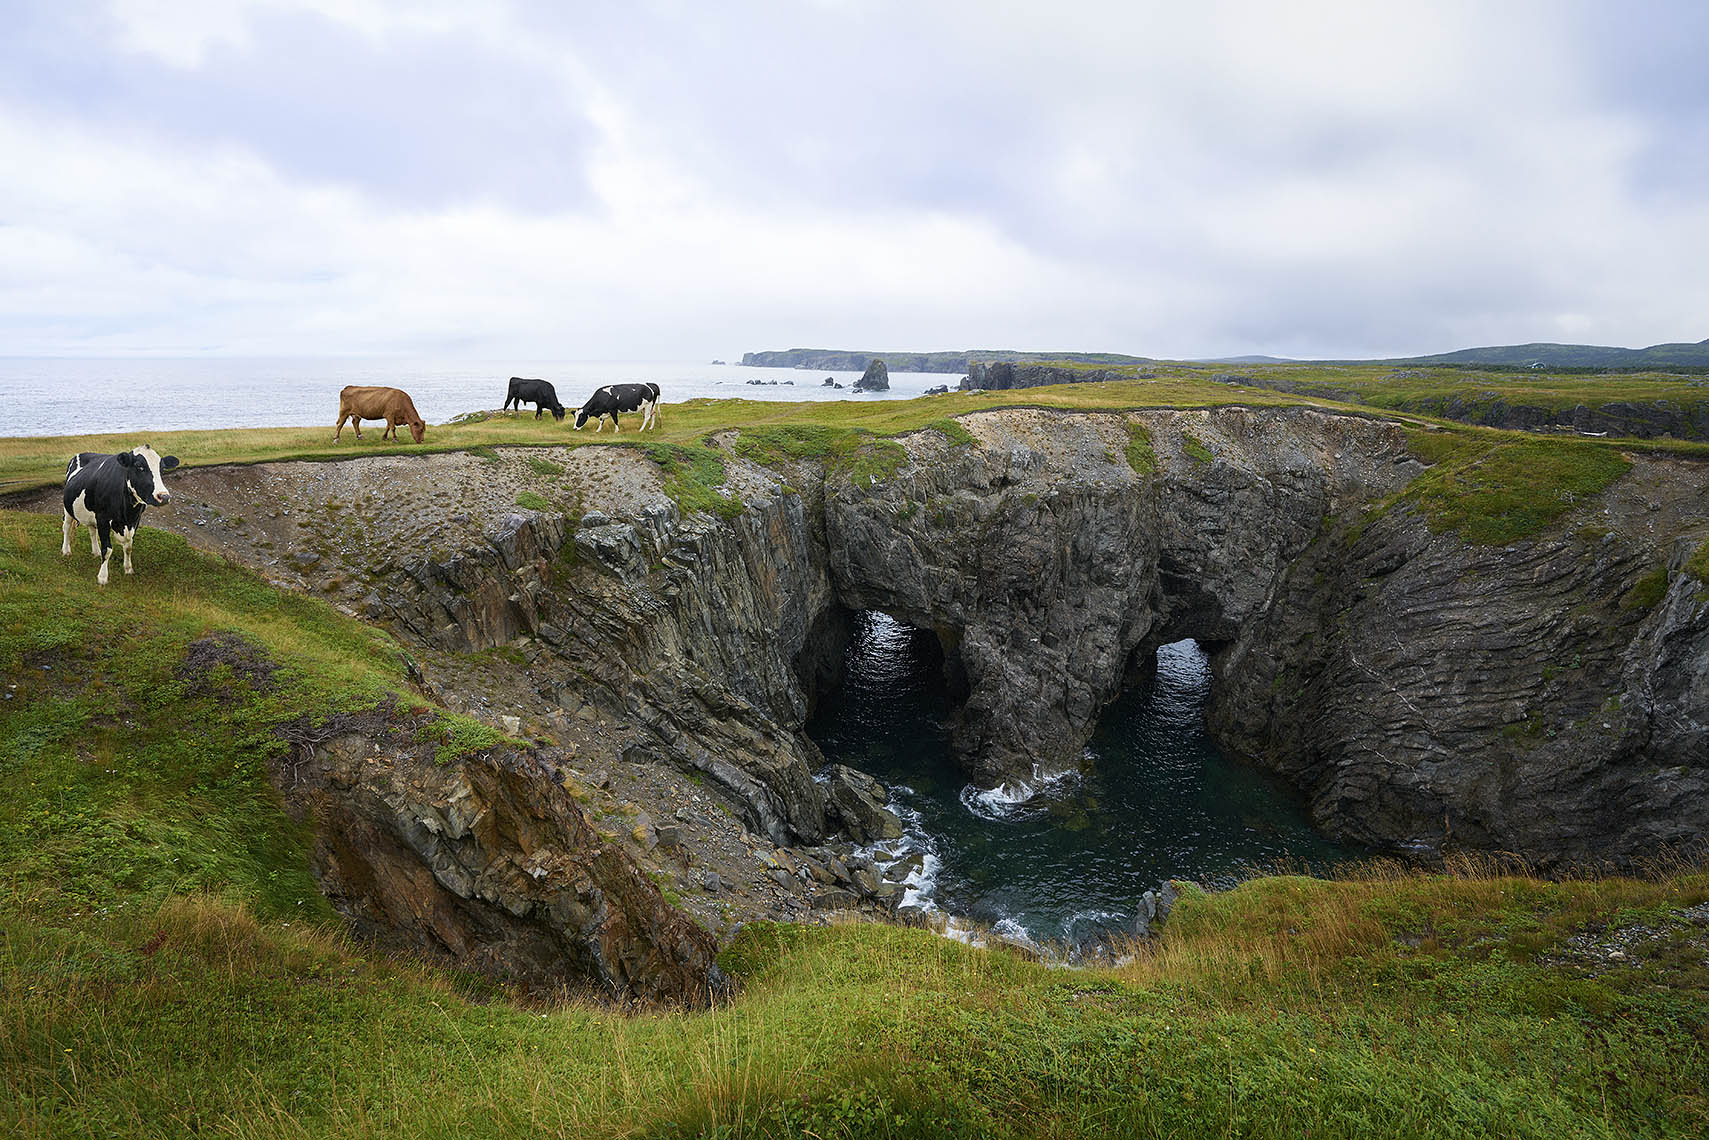 NFLD_Cows